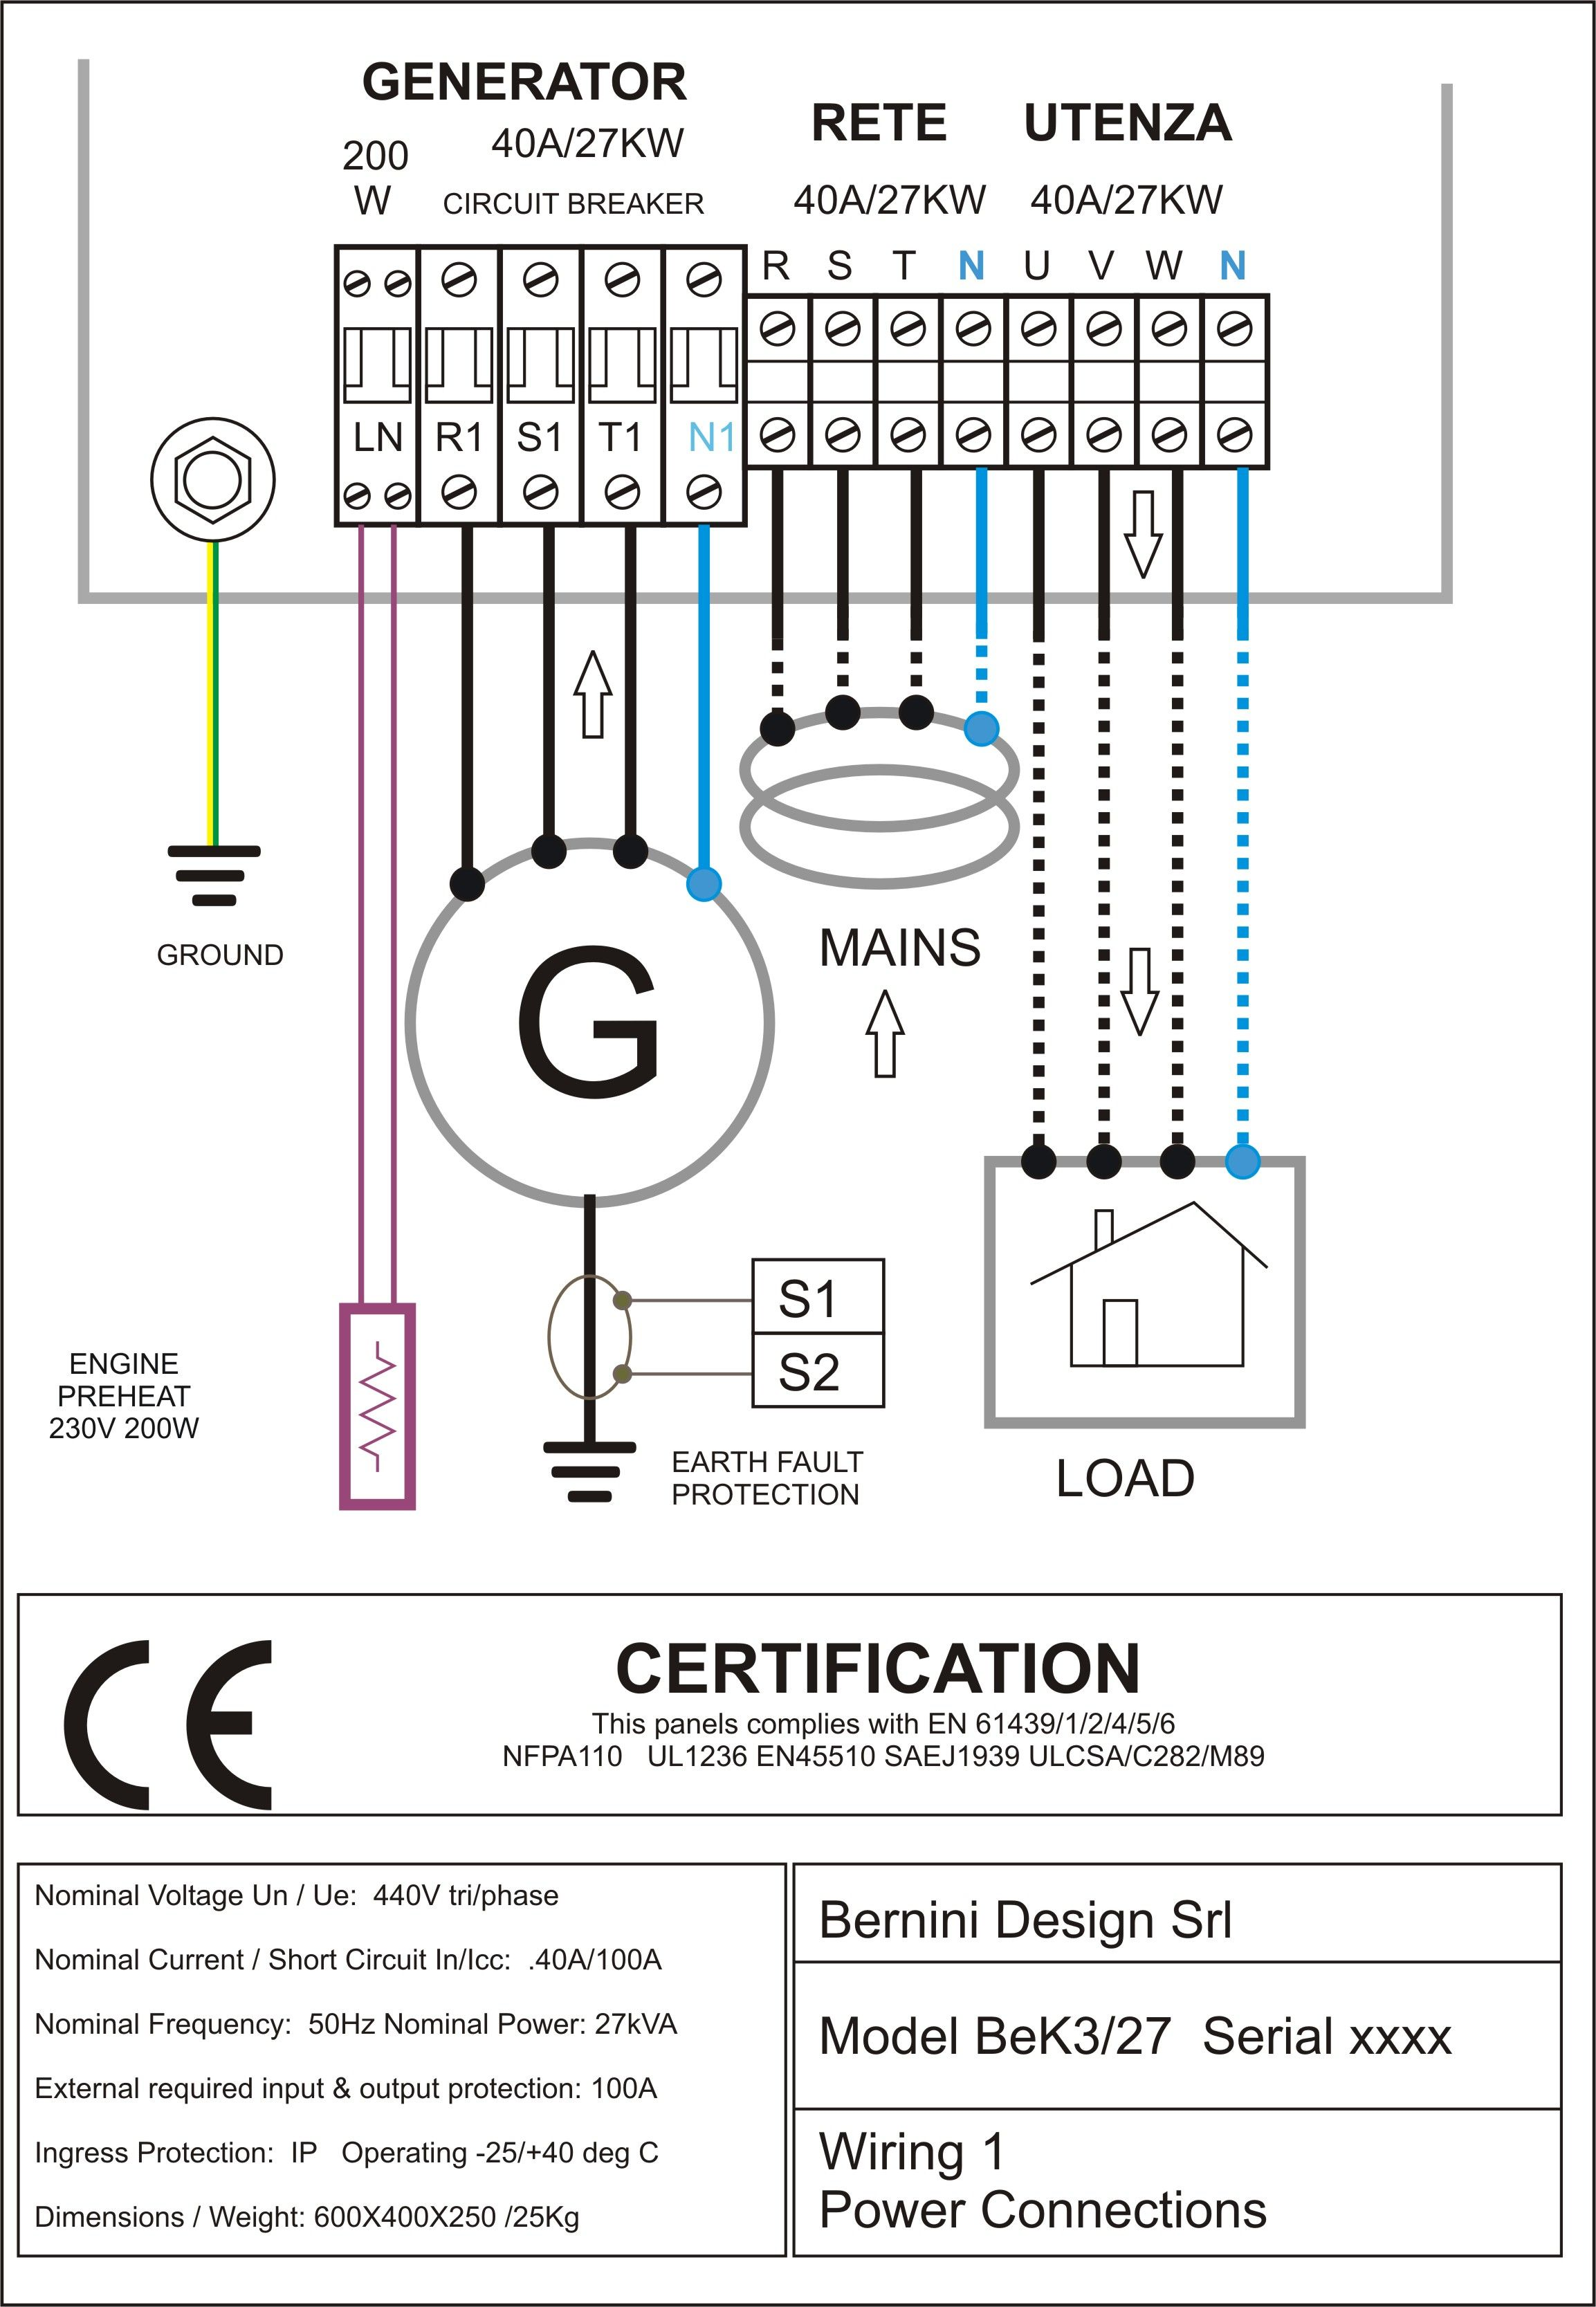 e789bca93f9142d48250ddc66668a81d diesel generator control panel wiring diagram gr pinterest controller wire diagram for 3246e2 lift at metegol.co